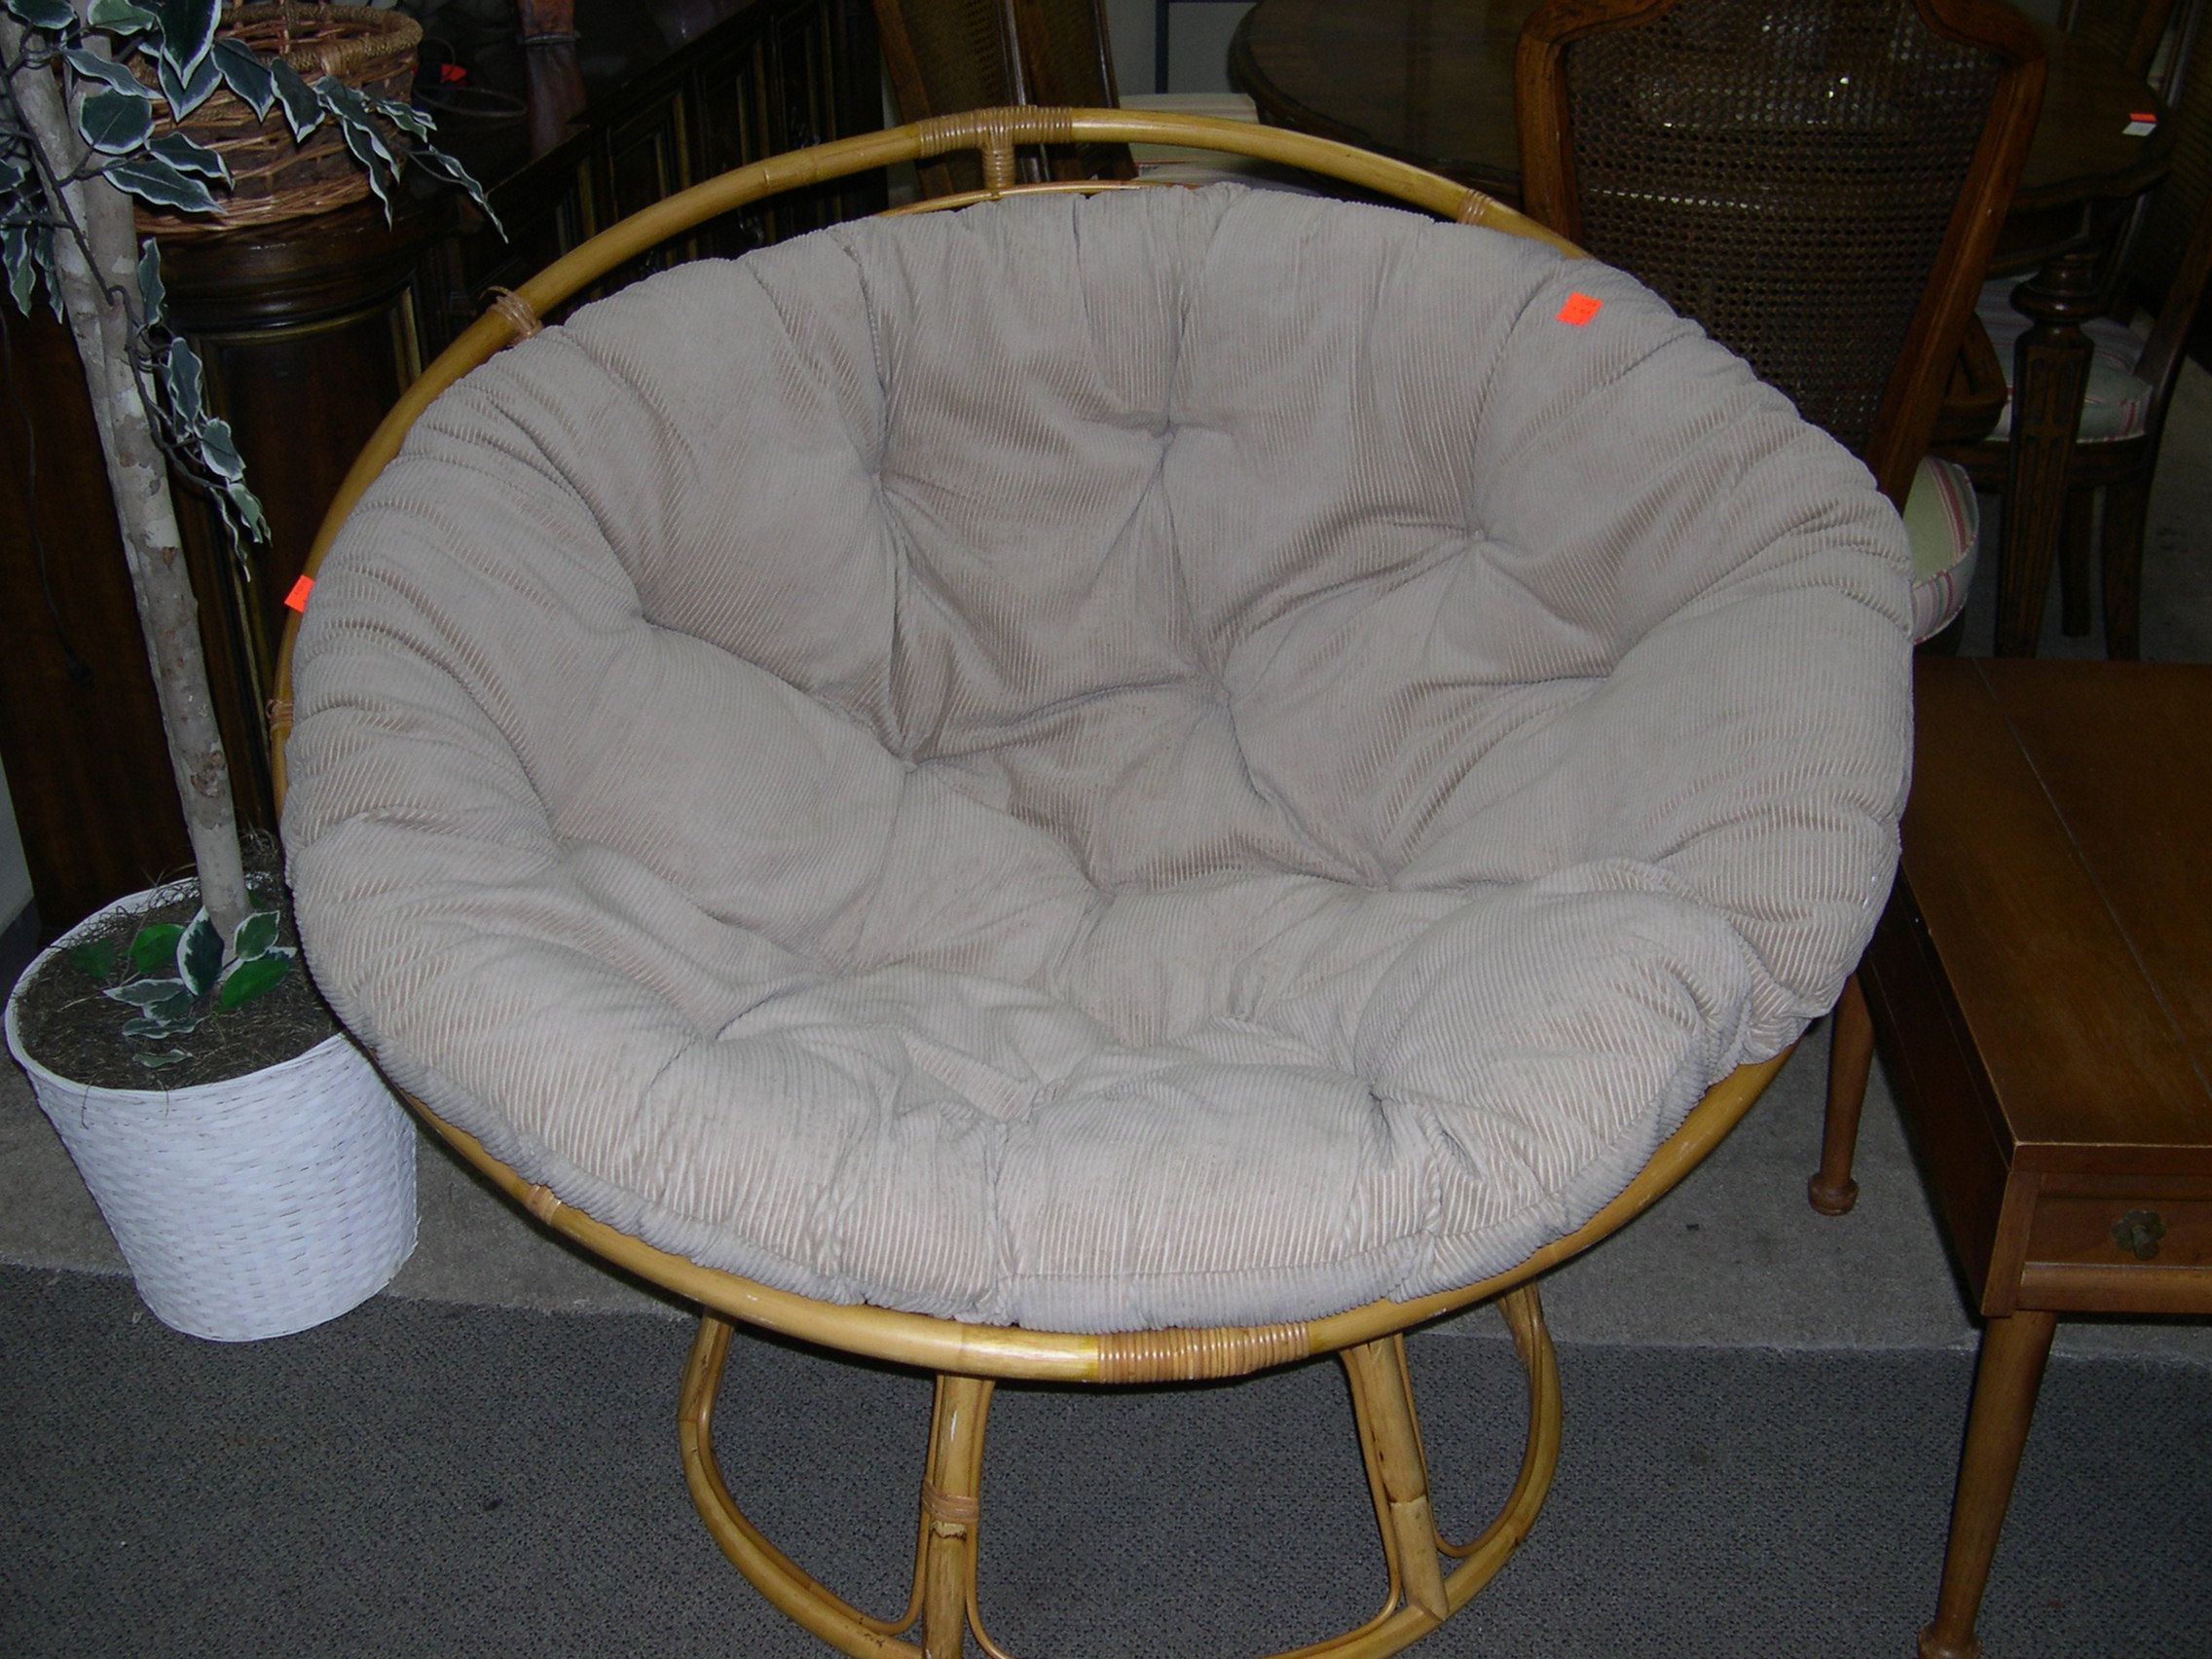 Awesome Vintage (Retro) Chair With Round Bamboo Frame And Fabric With Padded Seat.  Fun